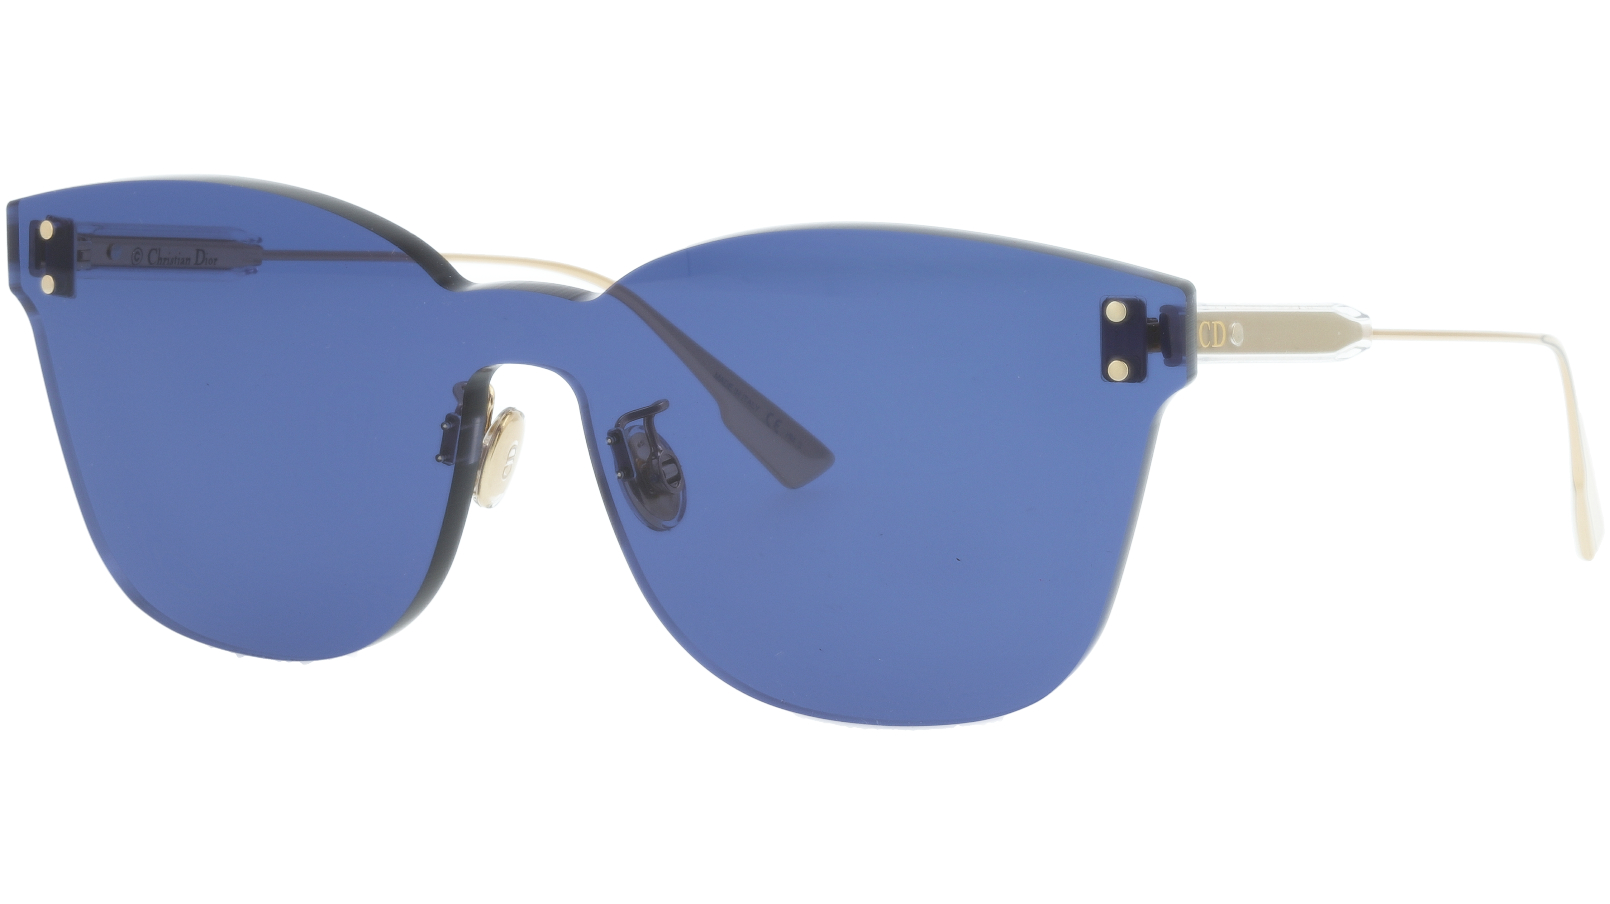 DIOR DIORCOLORQUAKE2 40GH0 99 YELLOW Sunglasses